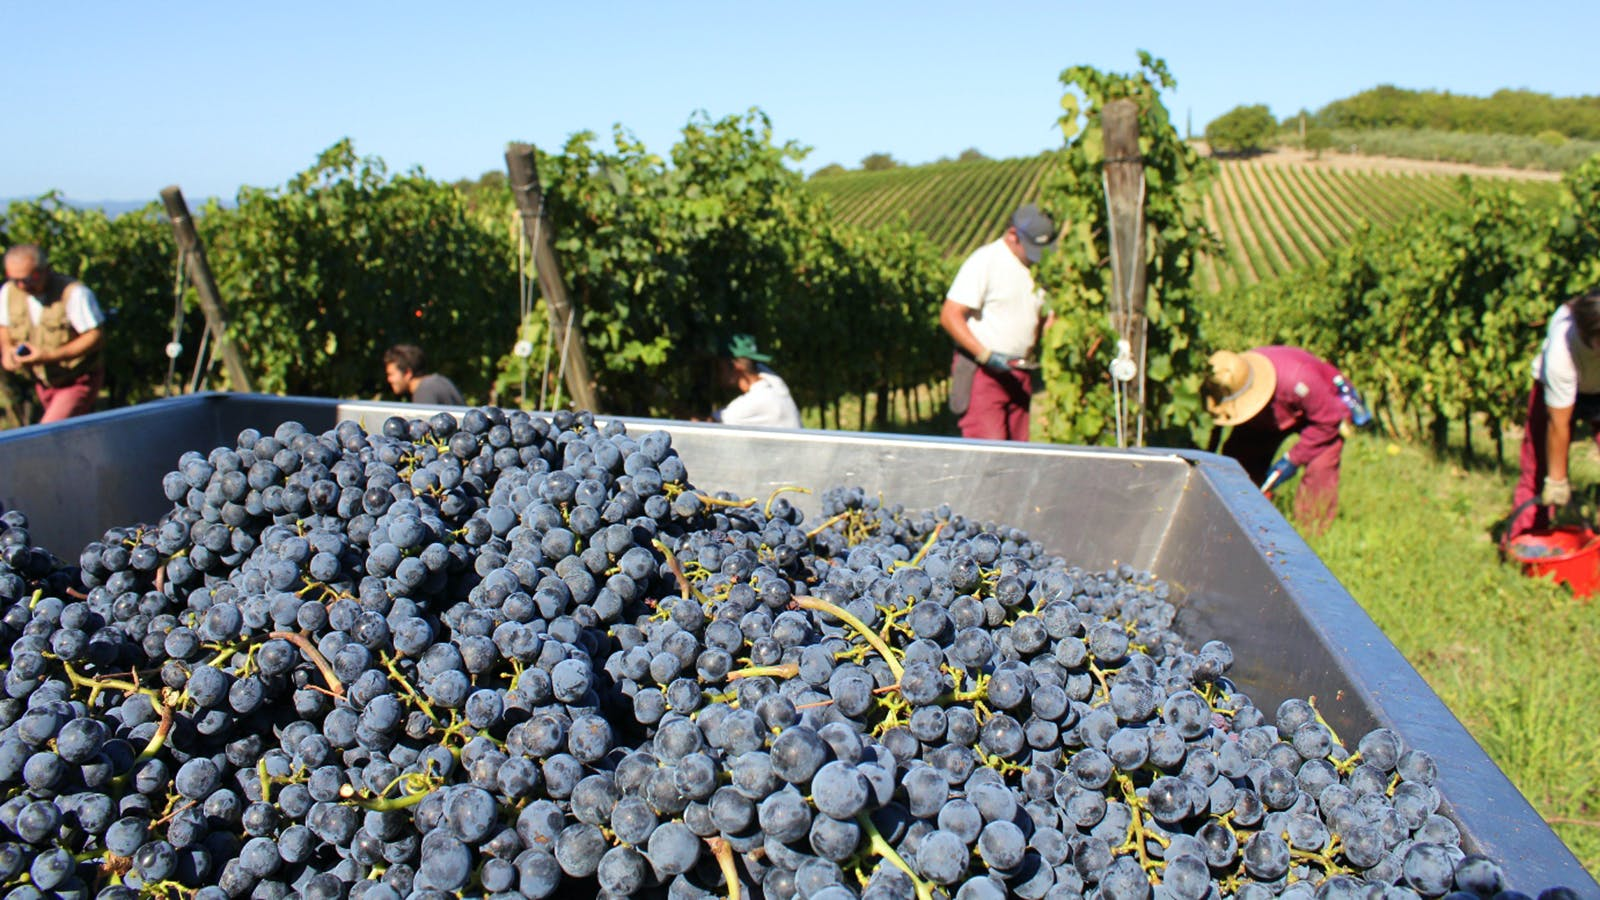 Wine Harvest 2015: Tuscany Enjoys a Summer of Sun